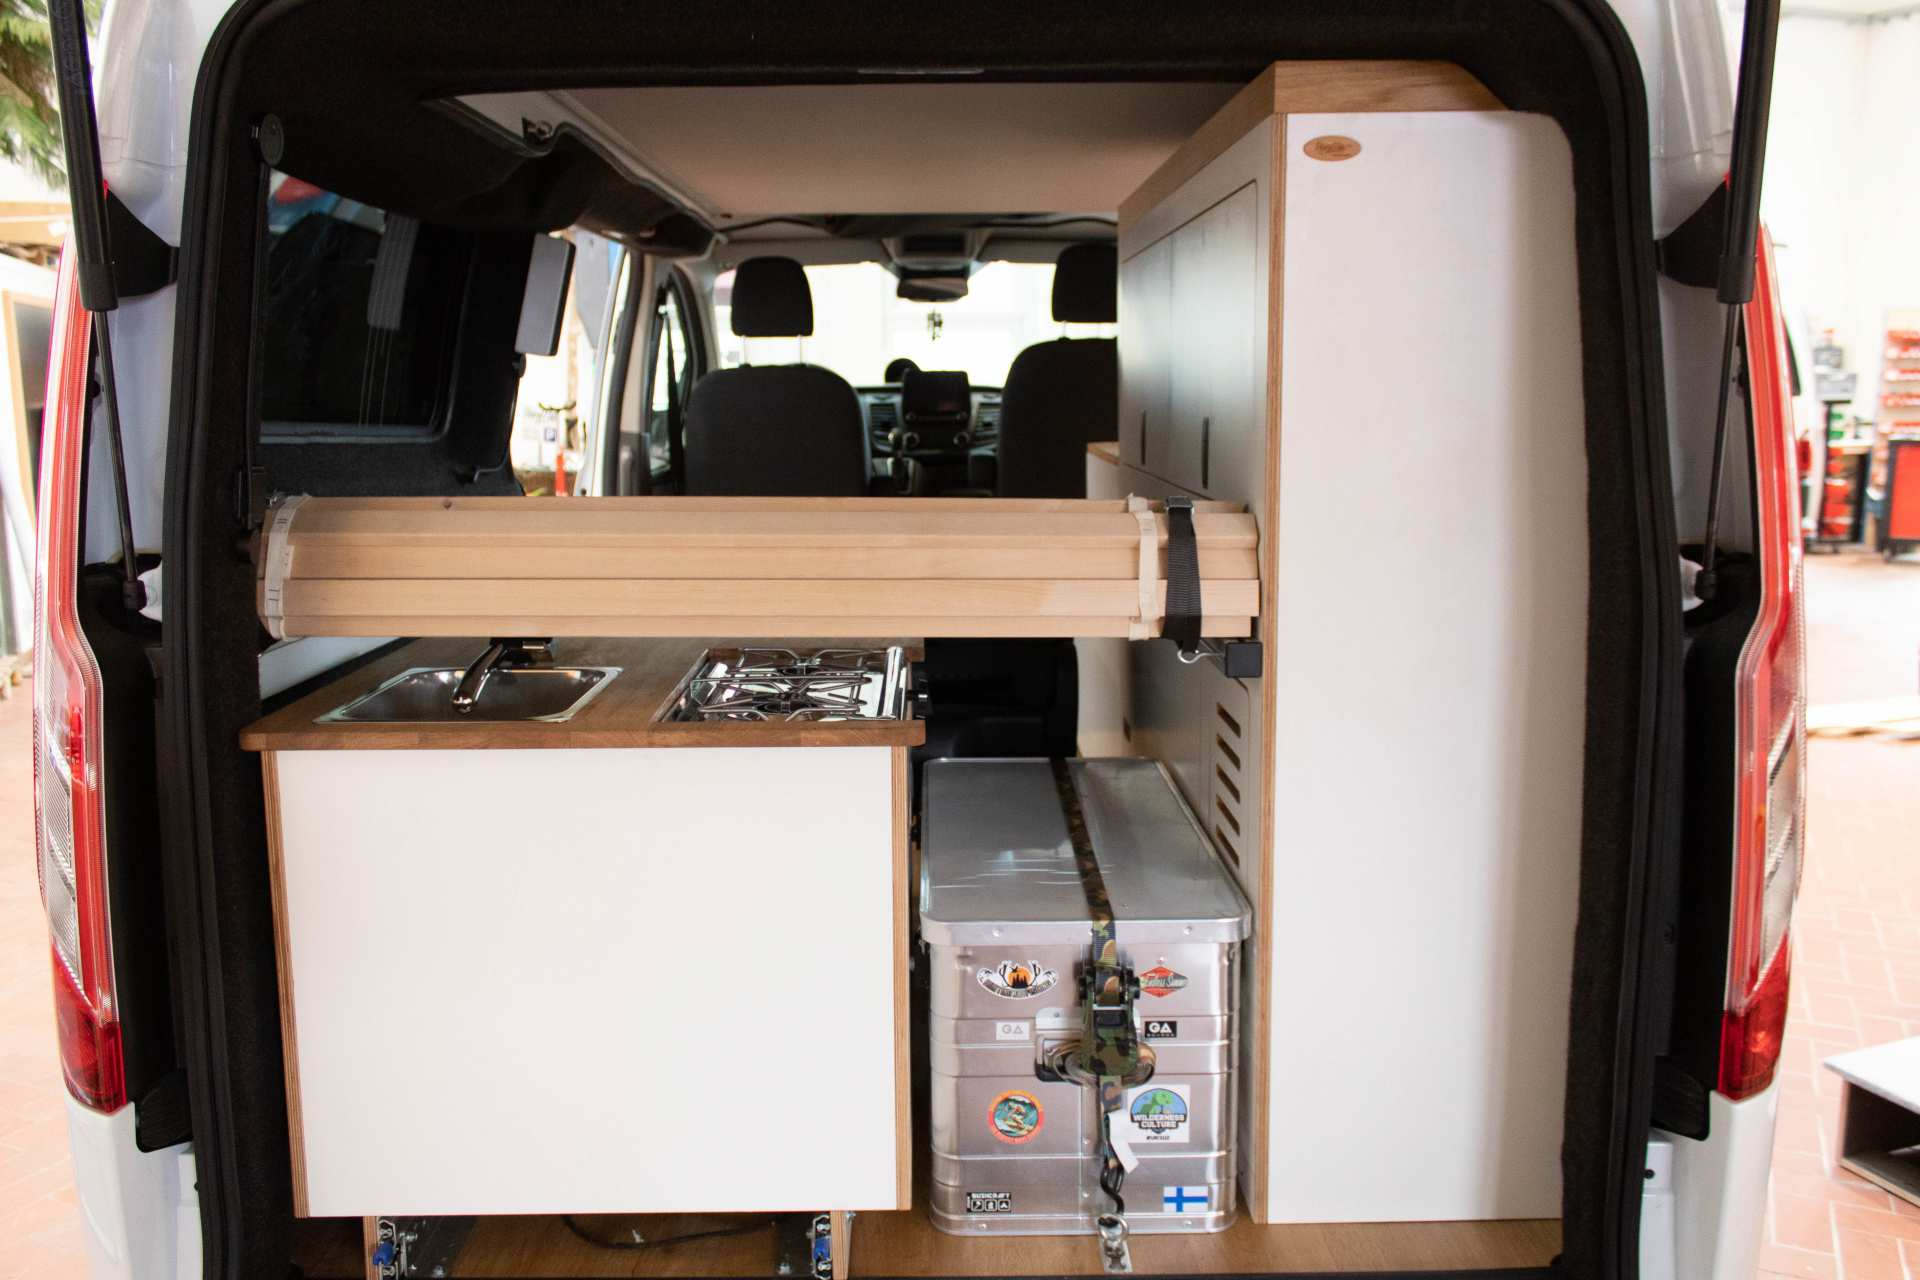 Individualausbau: EXPEDITION Ford Transit Custom, langer Radstand - 14